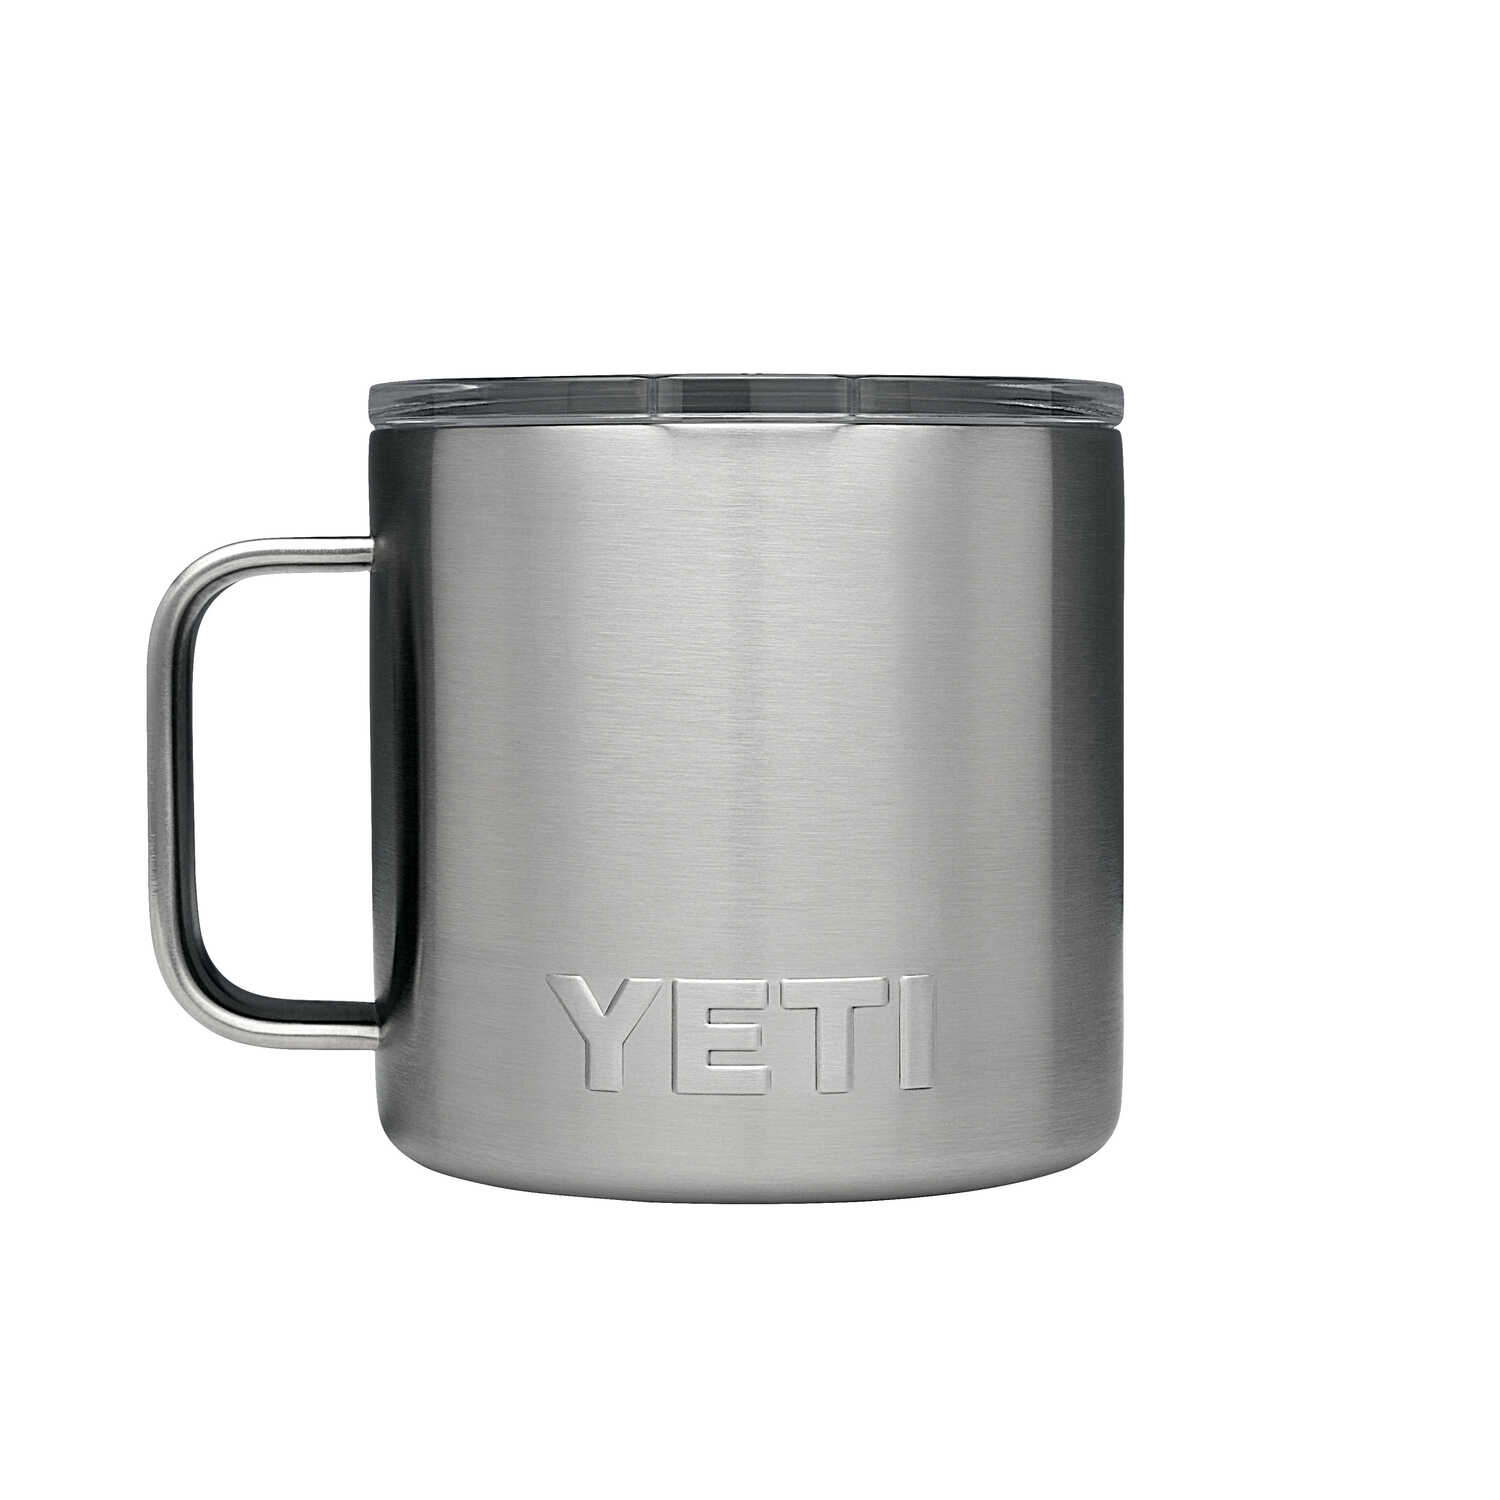 YETI  Rambler  Silver  Stainless Steel  Insulated Mug  BPA Free 14 oz.